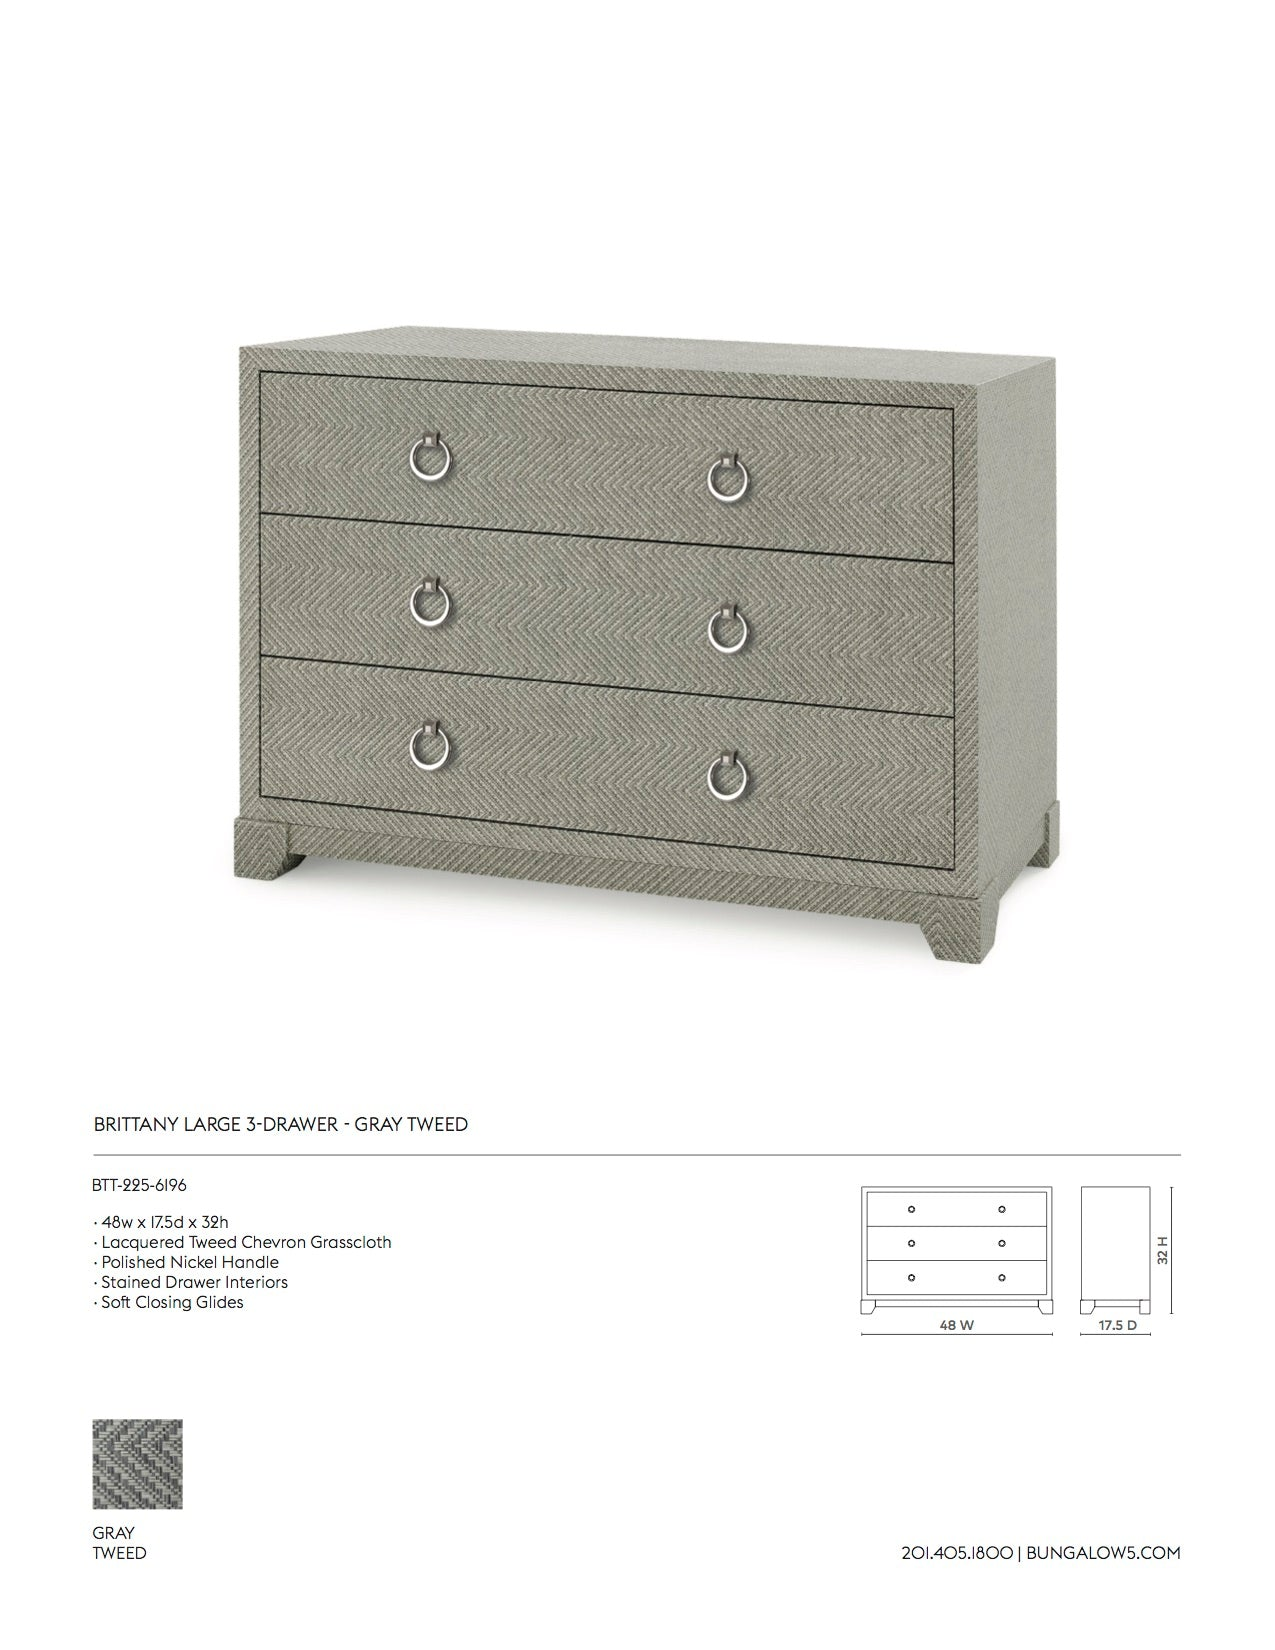 Bungalow 5 Brittany Large 3 Drawer Chest Gray Tweed Tearsheet